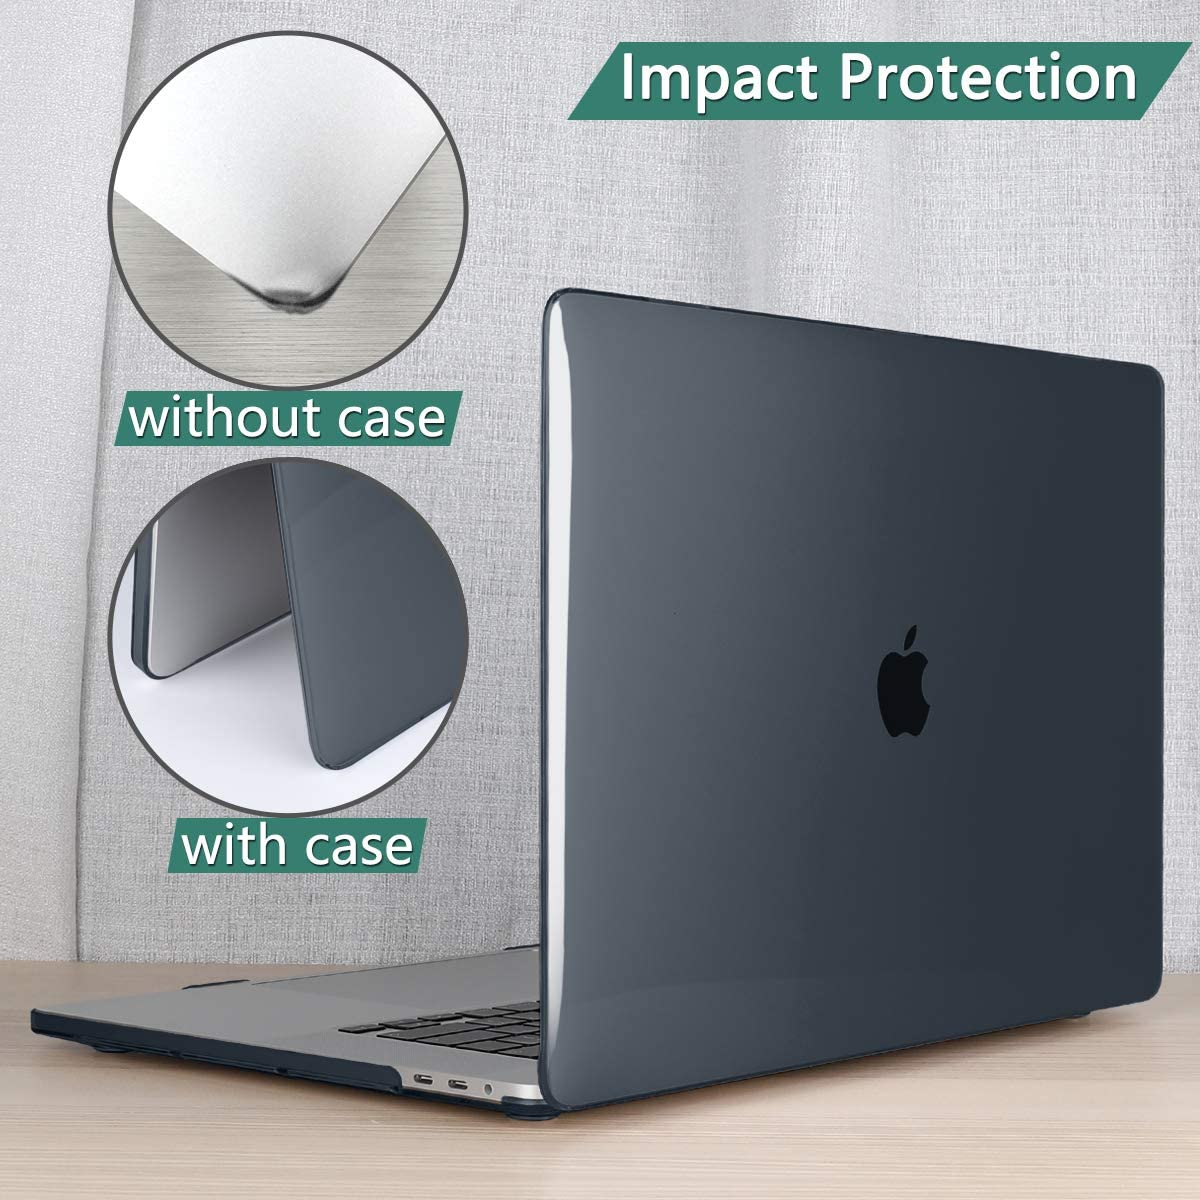 Black Dongke MacBook Pro 13 inch Case Model A2251//A2289 2020 Released,Glossy Plastic Hard Shell Case Cover for MacBook Pro 13 inch with Retina Display /& Touch Bar Fits Touch ID